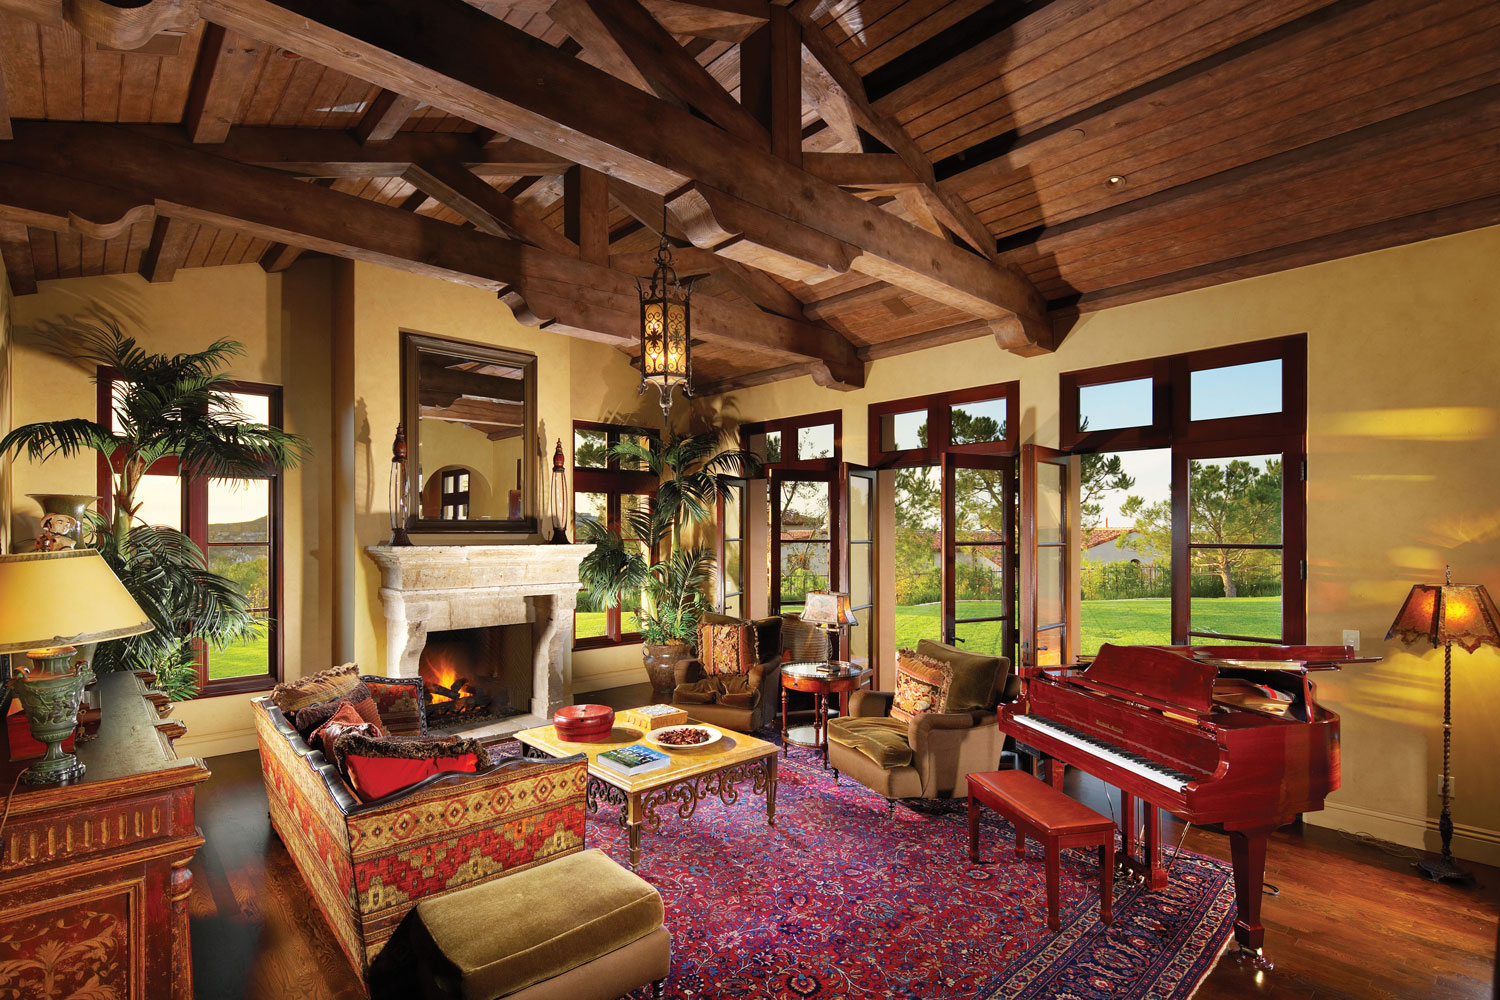 Contemporary-Spanish-Living-Room-Beamed-Trussed-Ceiling-Fireplace-Corbin-Reeves.jpg